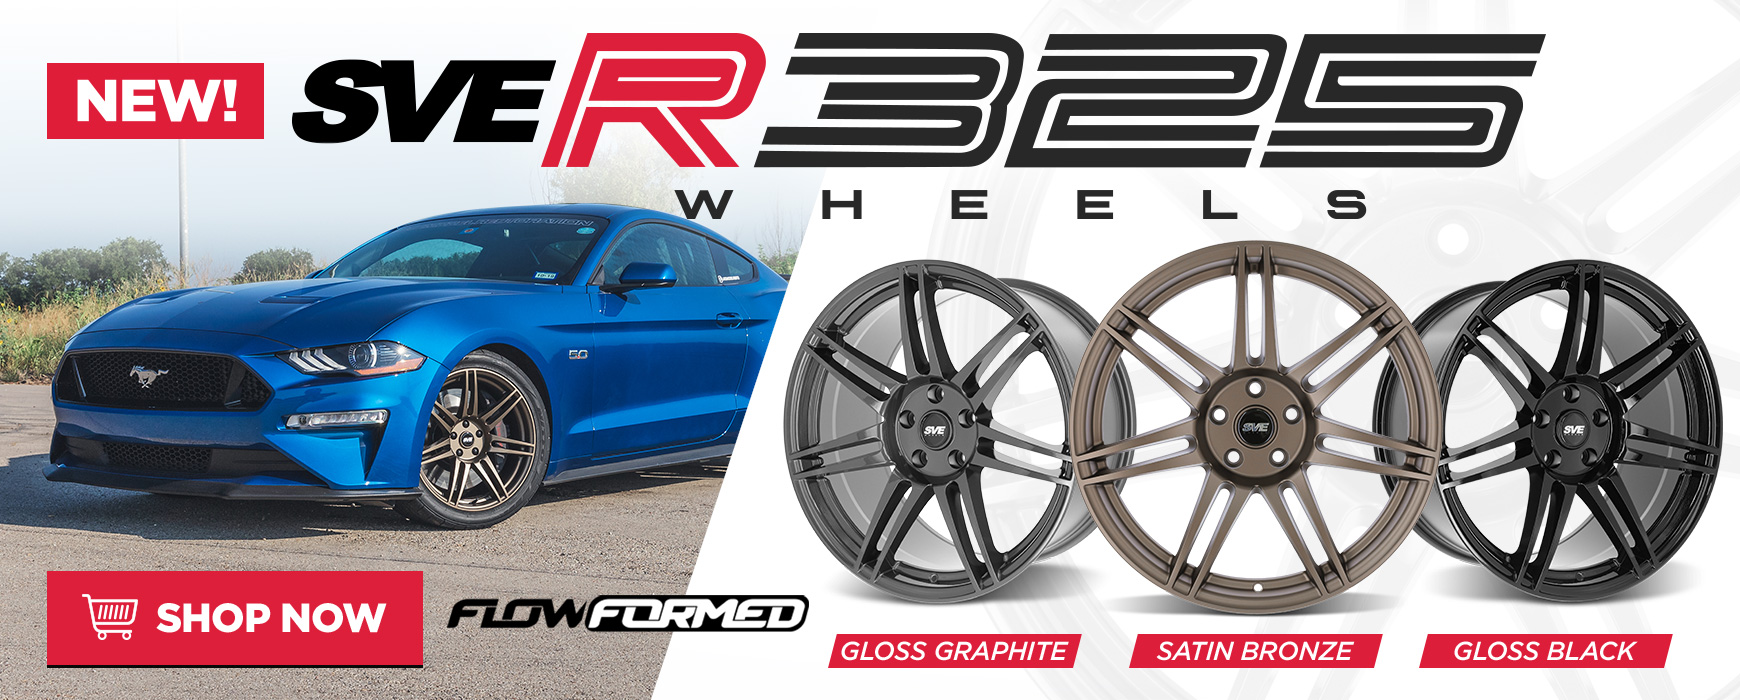 SVE R325 Wheels